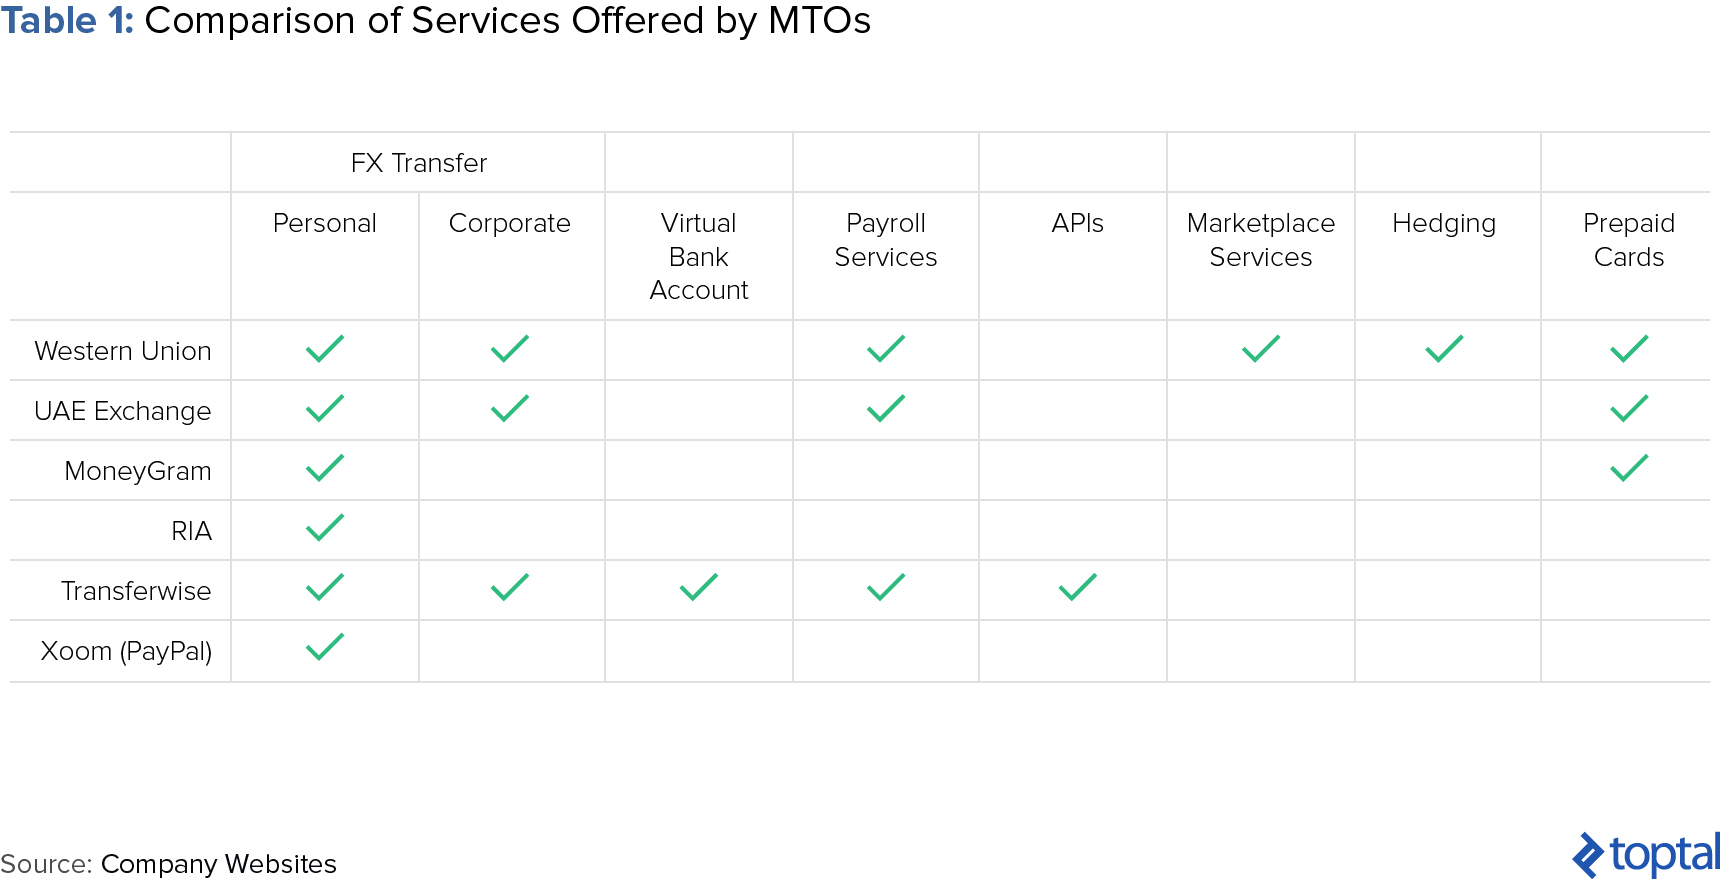 Table 1: Comparison of Services Offered by MTOs